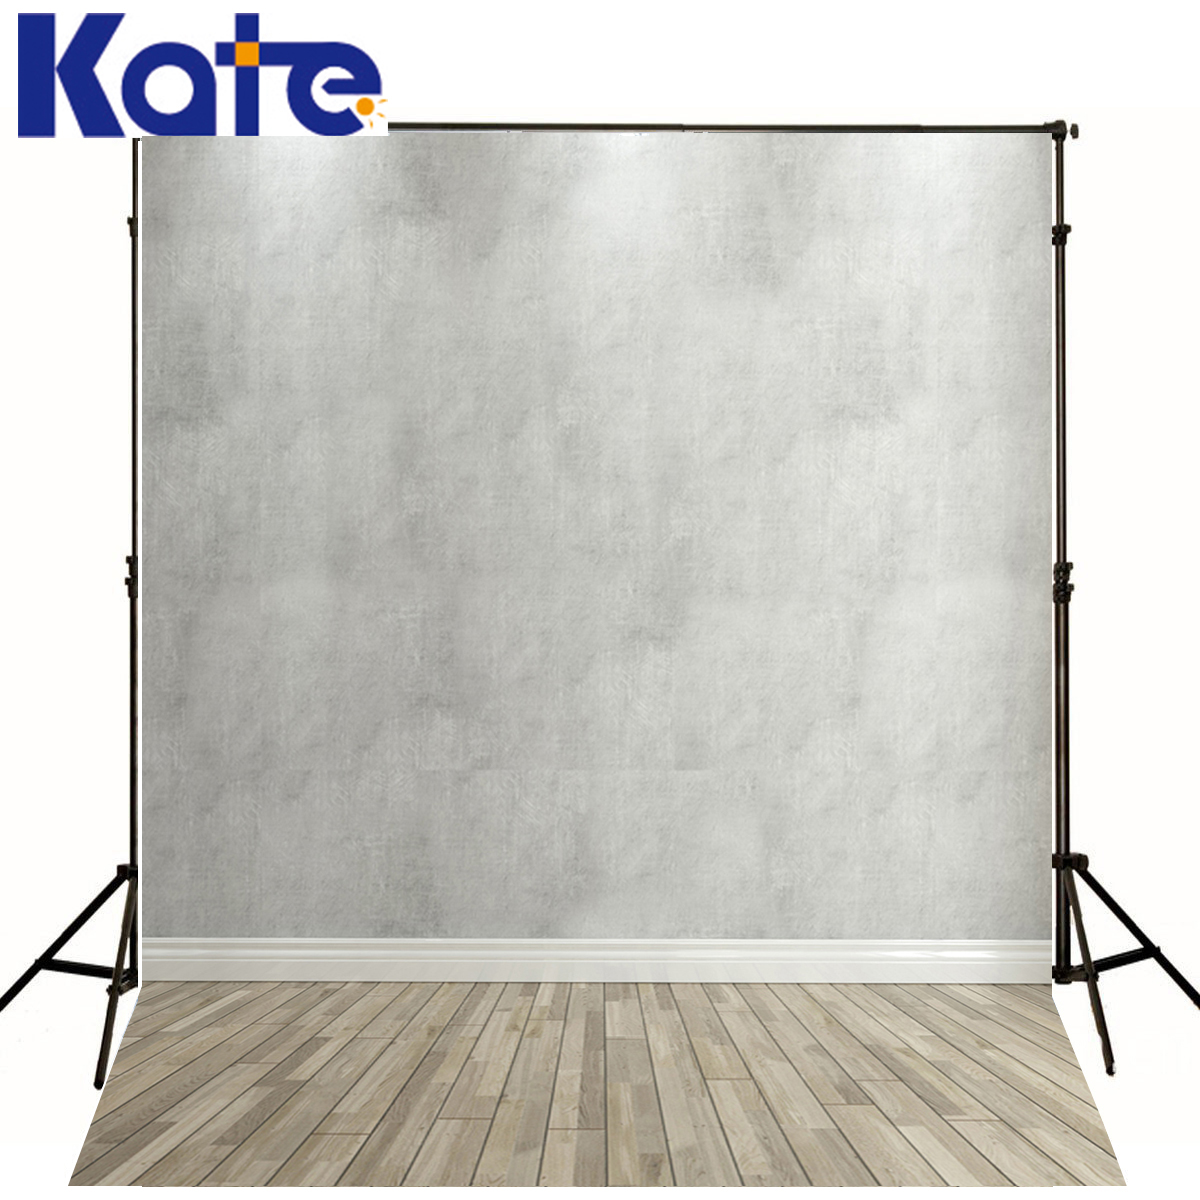 Kate Wood Background Photography Solid White Wall Backdrop Photo Wood Floor Photocall Backgrounds For Photo Studio J01676 haikyuu nekoma high school summer uniform kozume kenma kuroo tetsurou cosplay halloween costumes